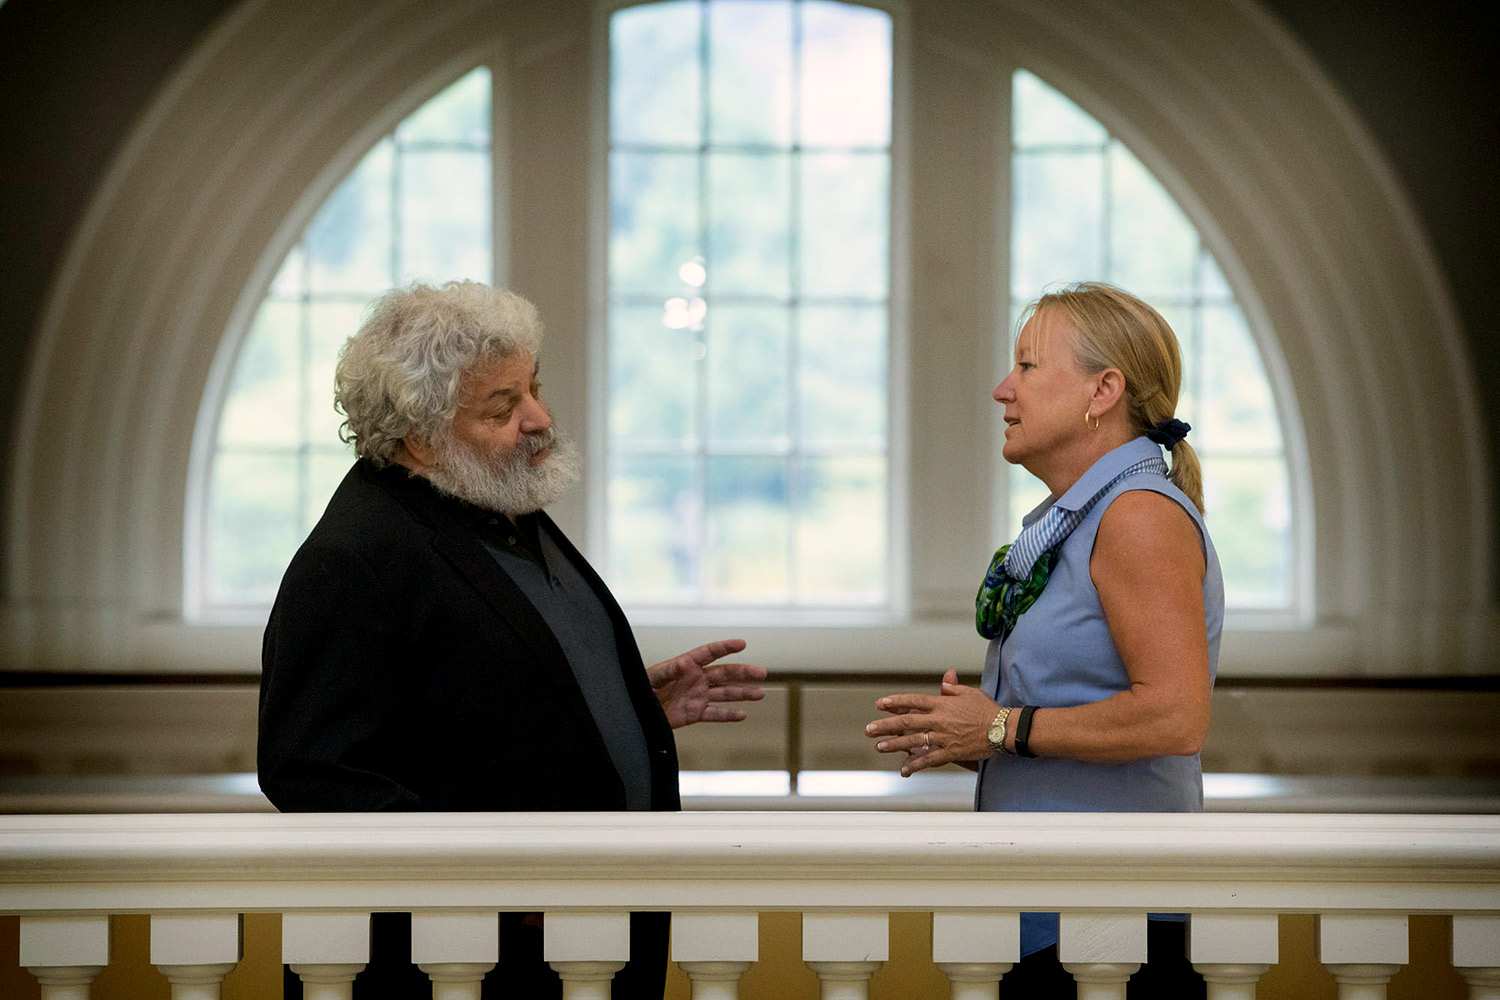 R. Edward Freeman, left, teaches a required business ethics course at Darden, while Luann Lynch, right, incorporates ethics-driven case studies into her elective courses, including a new case study she and two former students wrote about the Volkswagen scandal. (Photo by Dan Addison, University Communications)